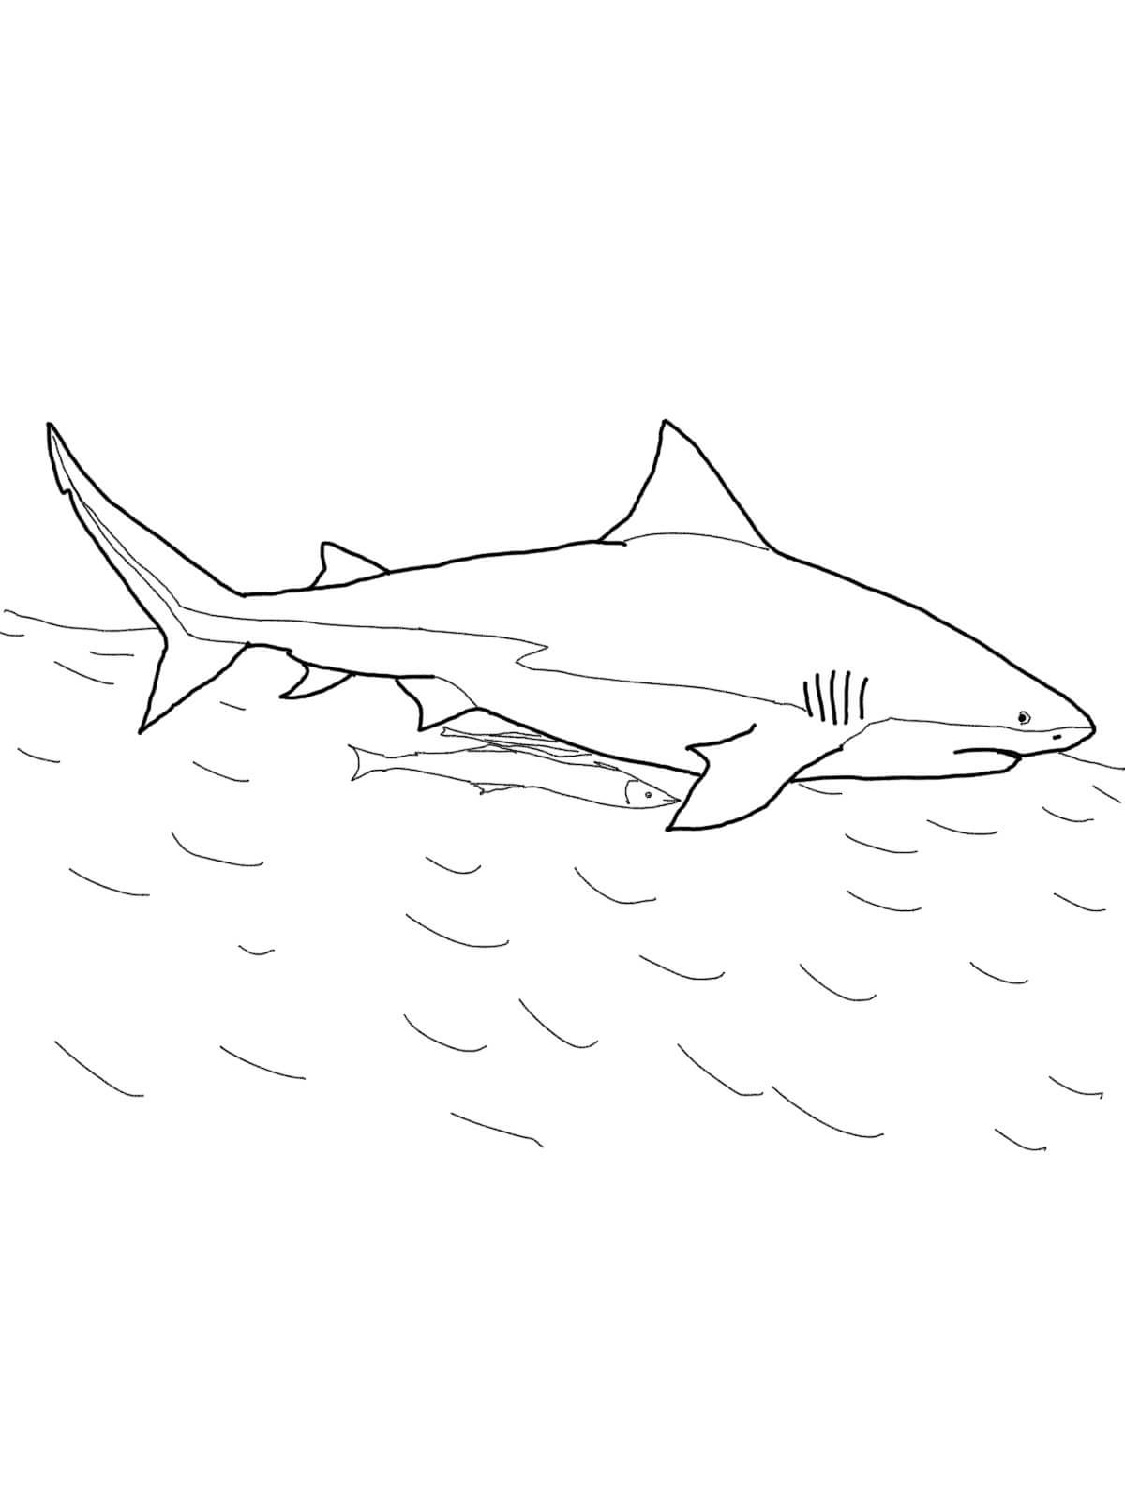 shark-color-pages-simple